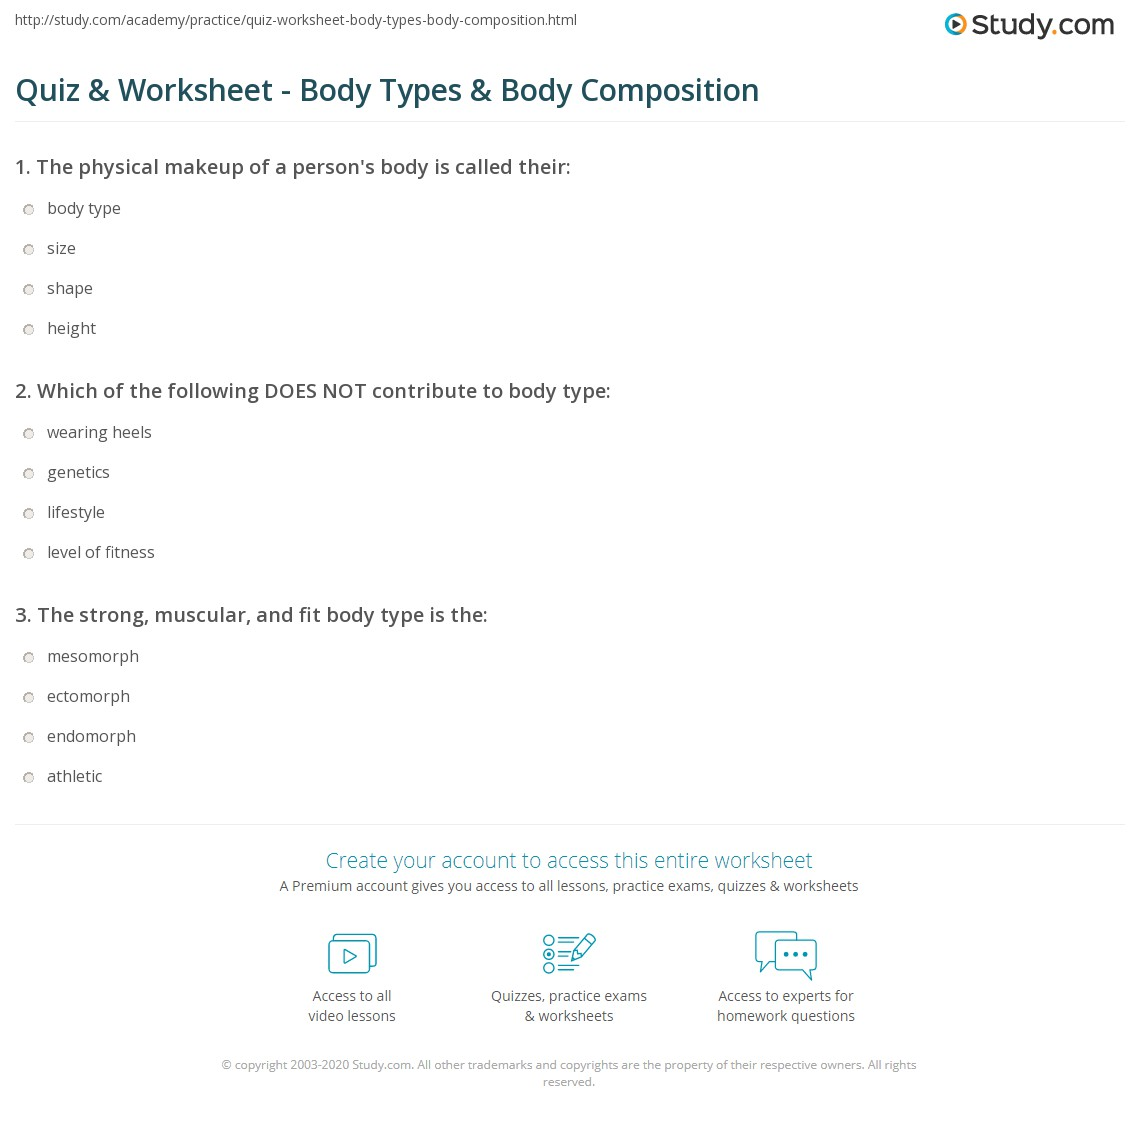 Body Composition Worksheet - Tecnologialinstante